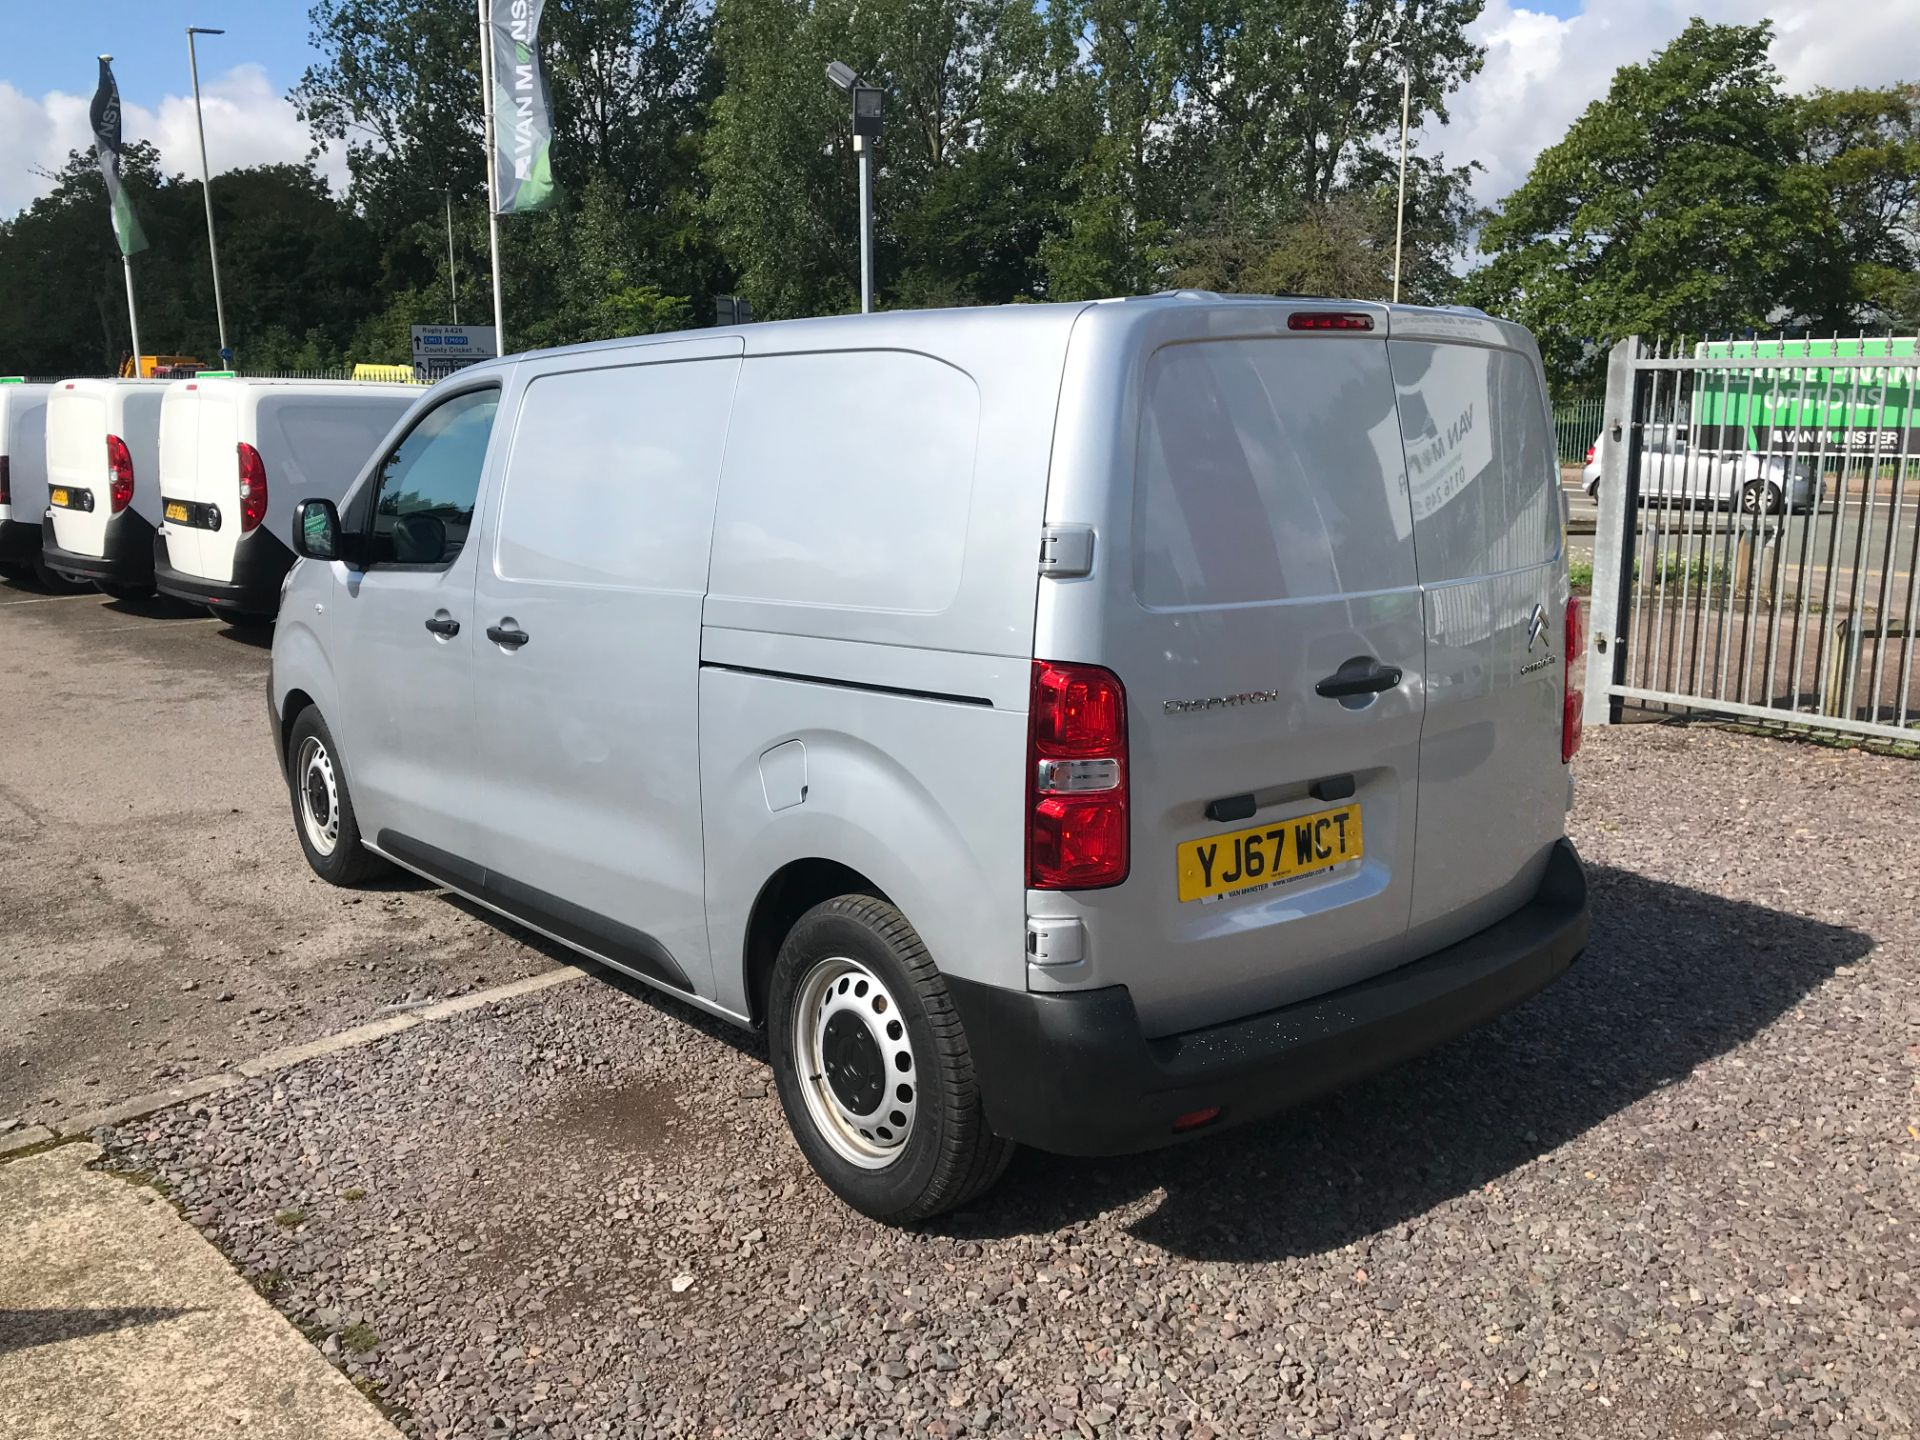 2017 Citroen Dispatch 1000 1.6 Bluehdi 95 Van Enterprise EURO 6 (YJ67WCT) Image 7